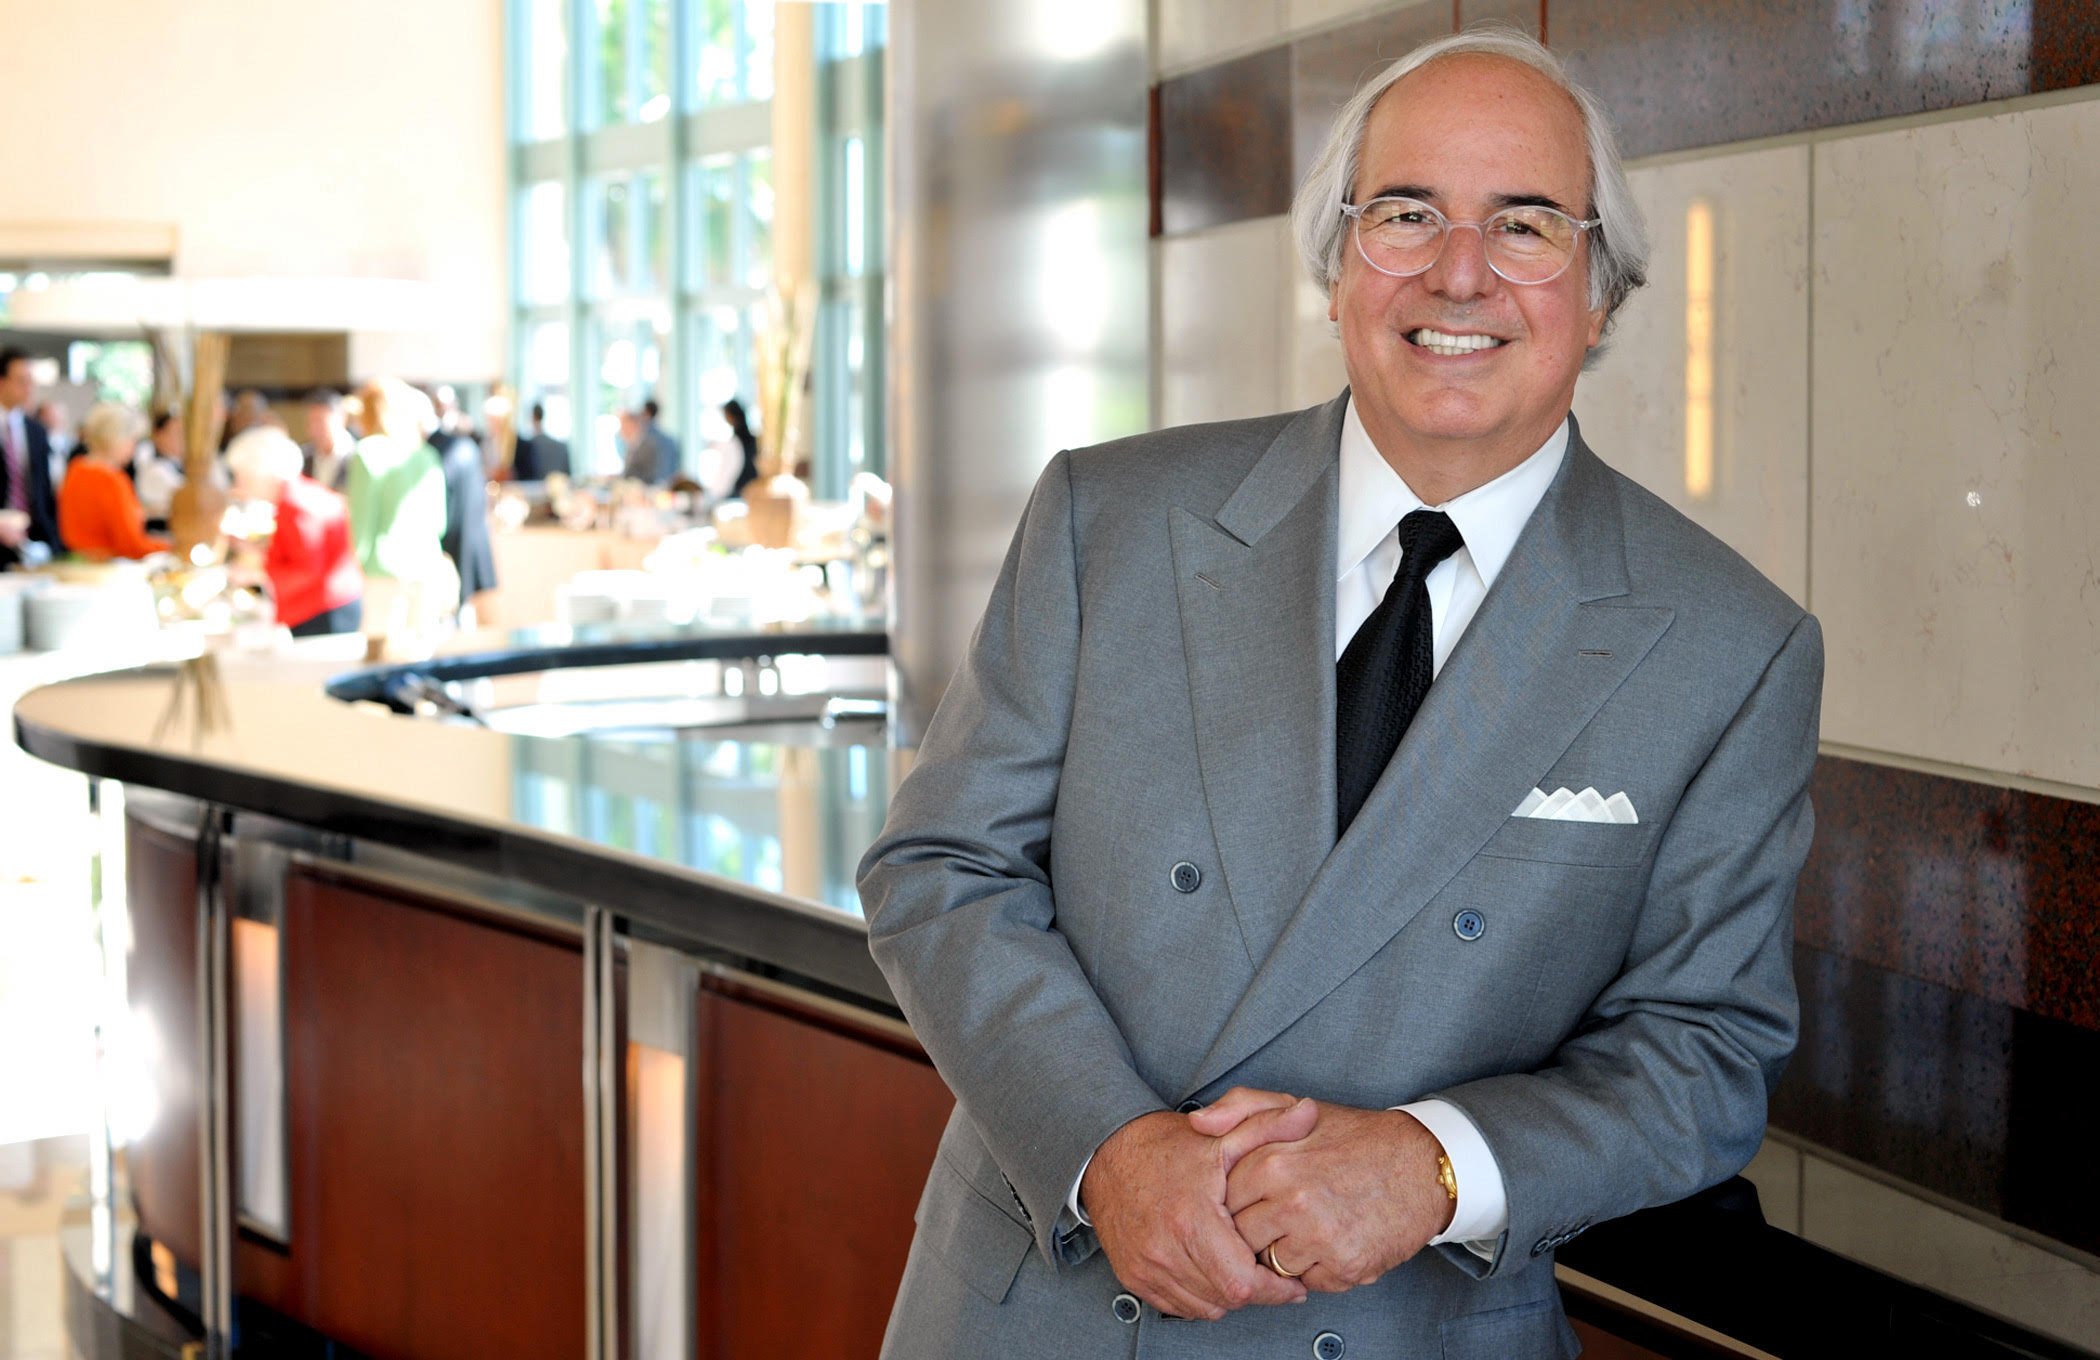 112210 Photo by Jeffrey Langlois/Palm Beach Daily News. Frank Abagnale Jr. before speaking during the Forum Club Monday at the Cohen Pavilion.